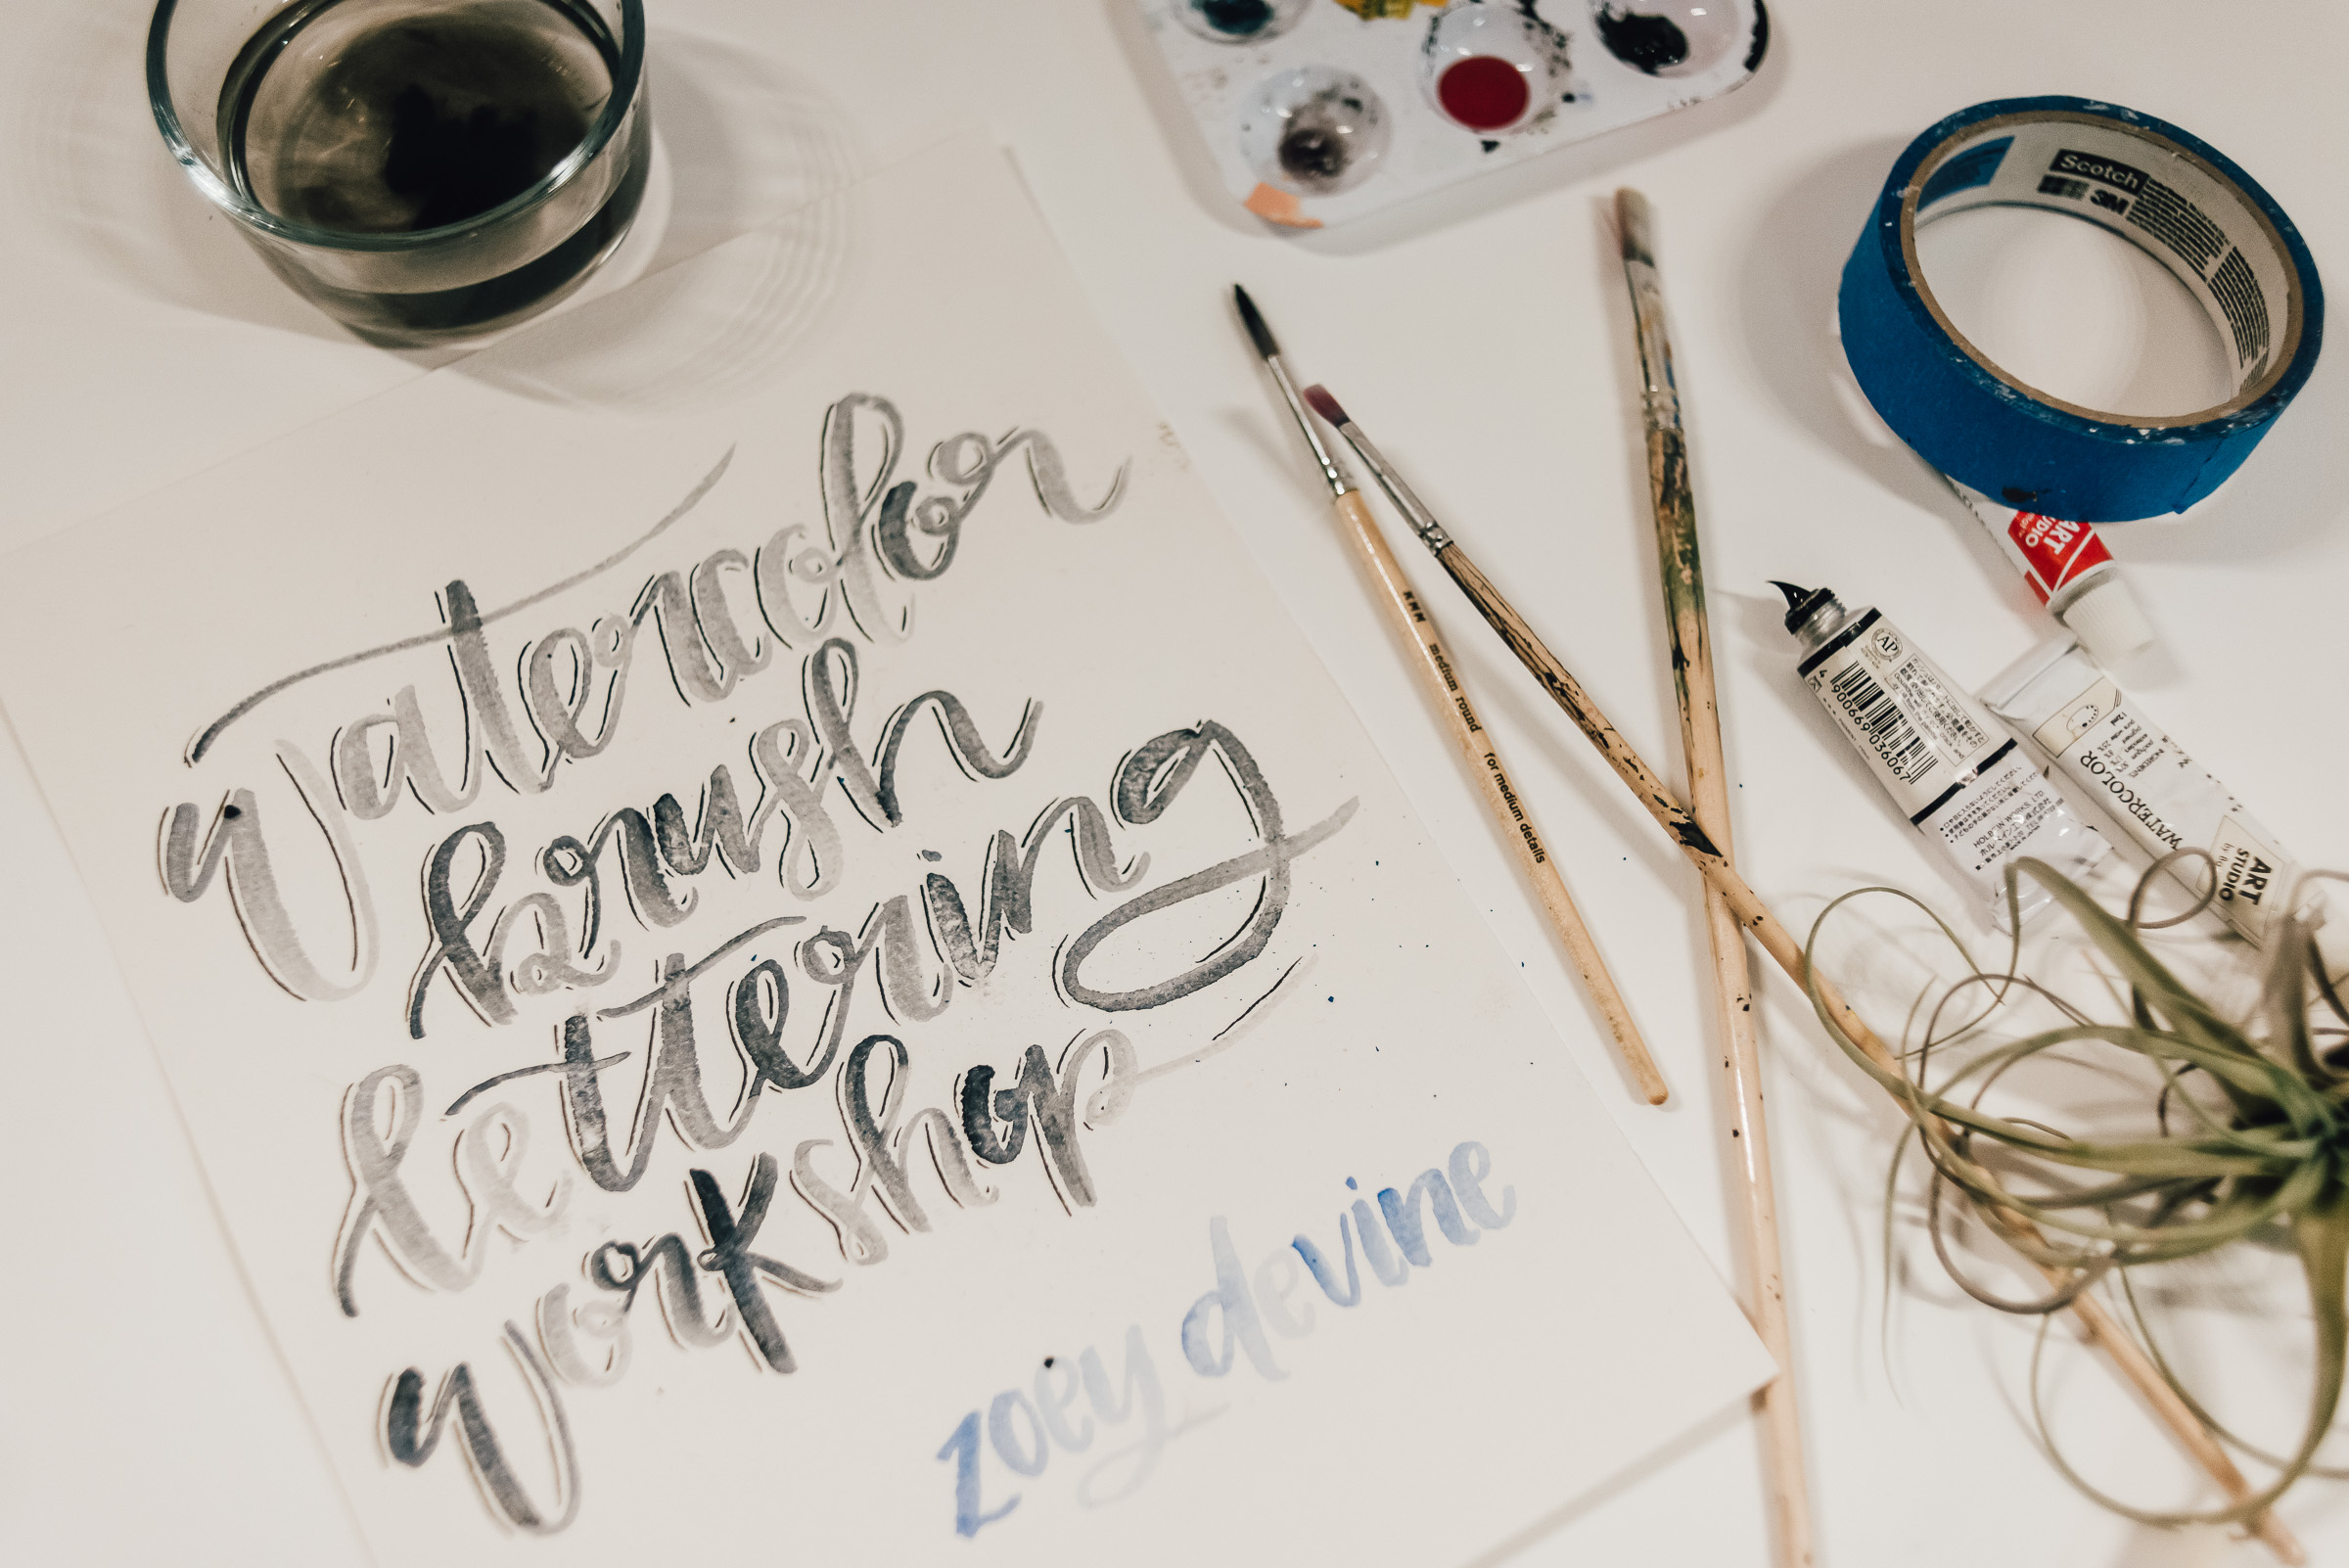 WatercolorCalligraphyWorkshop_LightGalleryGR-1.jpg